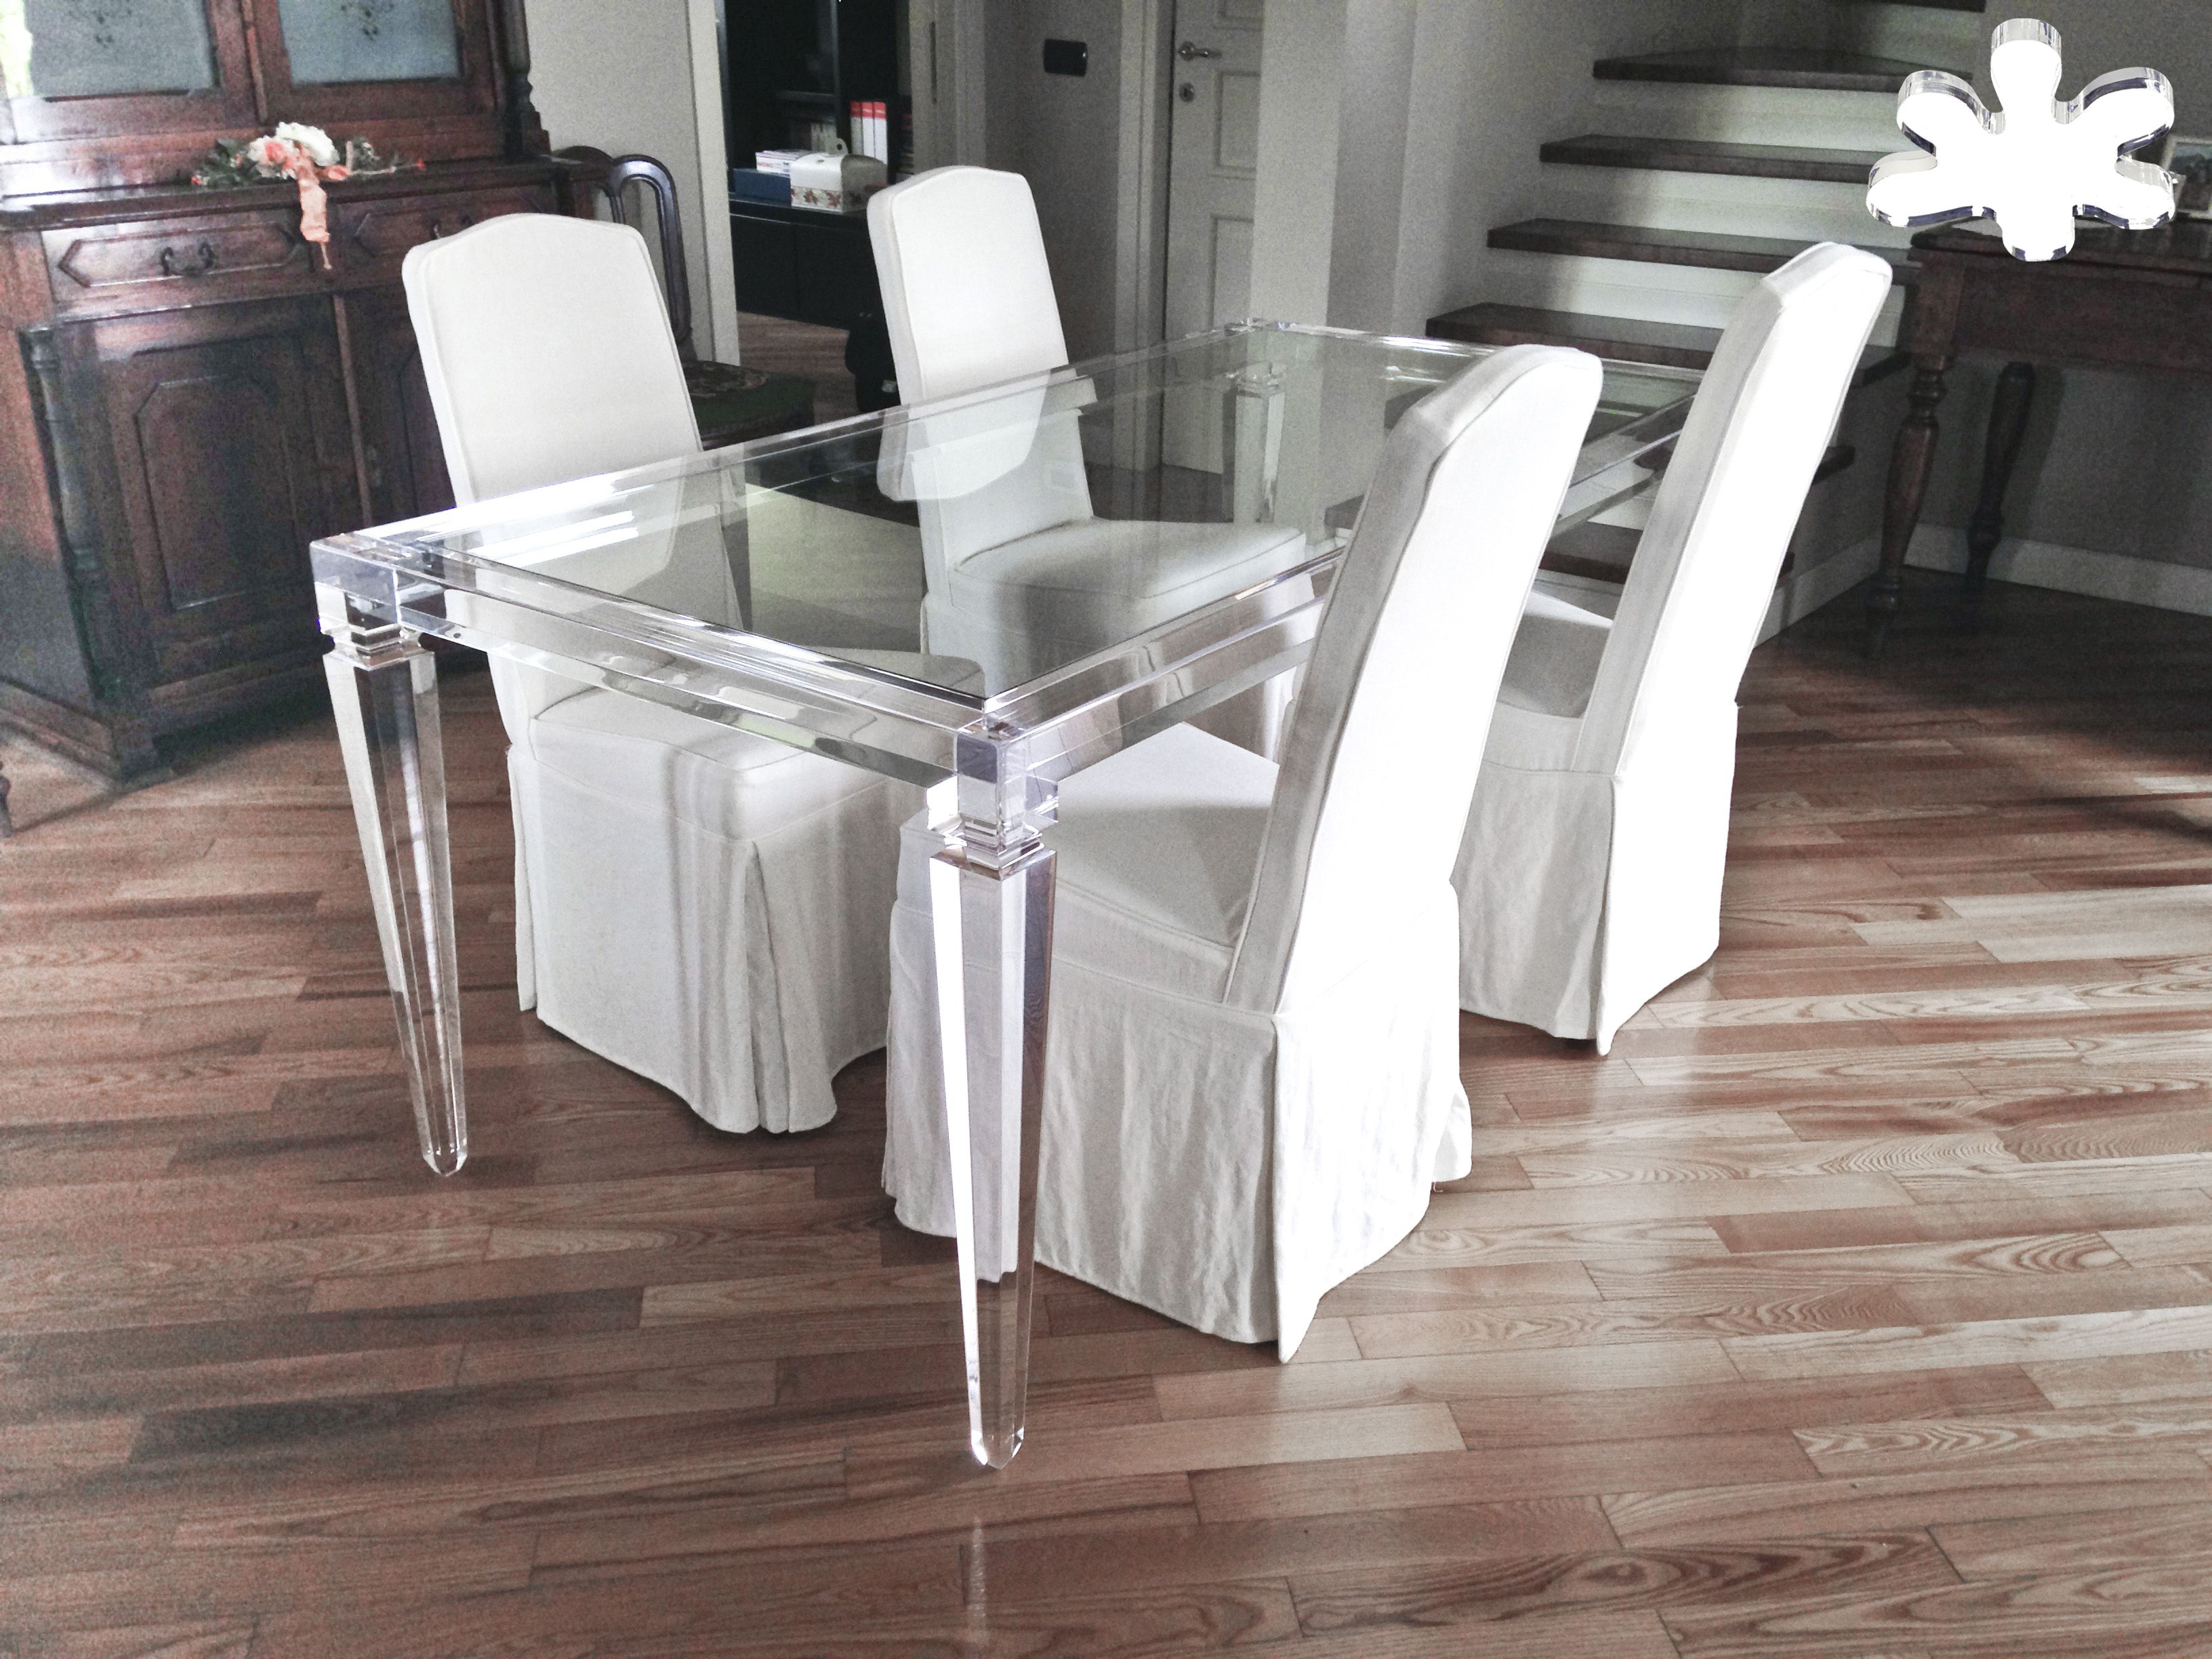 Lucite Acrylic dining table - Acrylic furniture - TAVOLI PRANZO IN ...